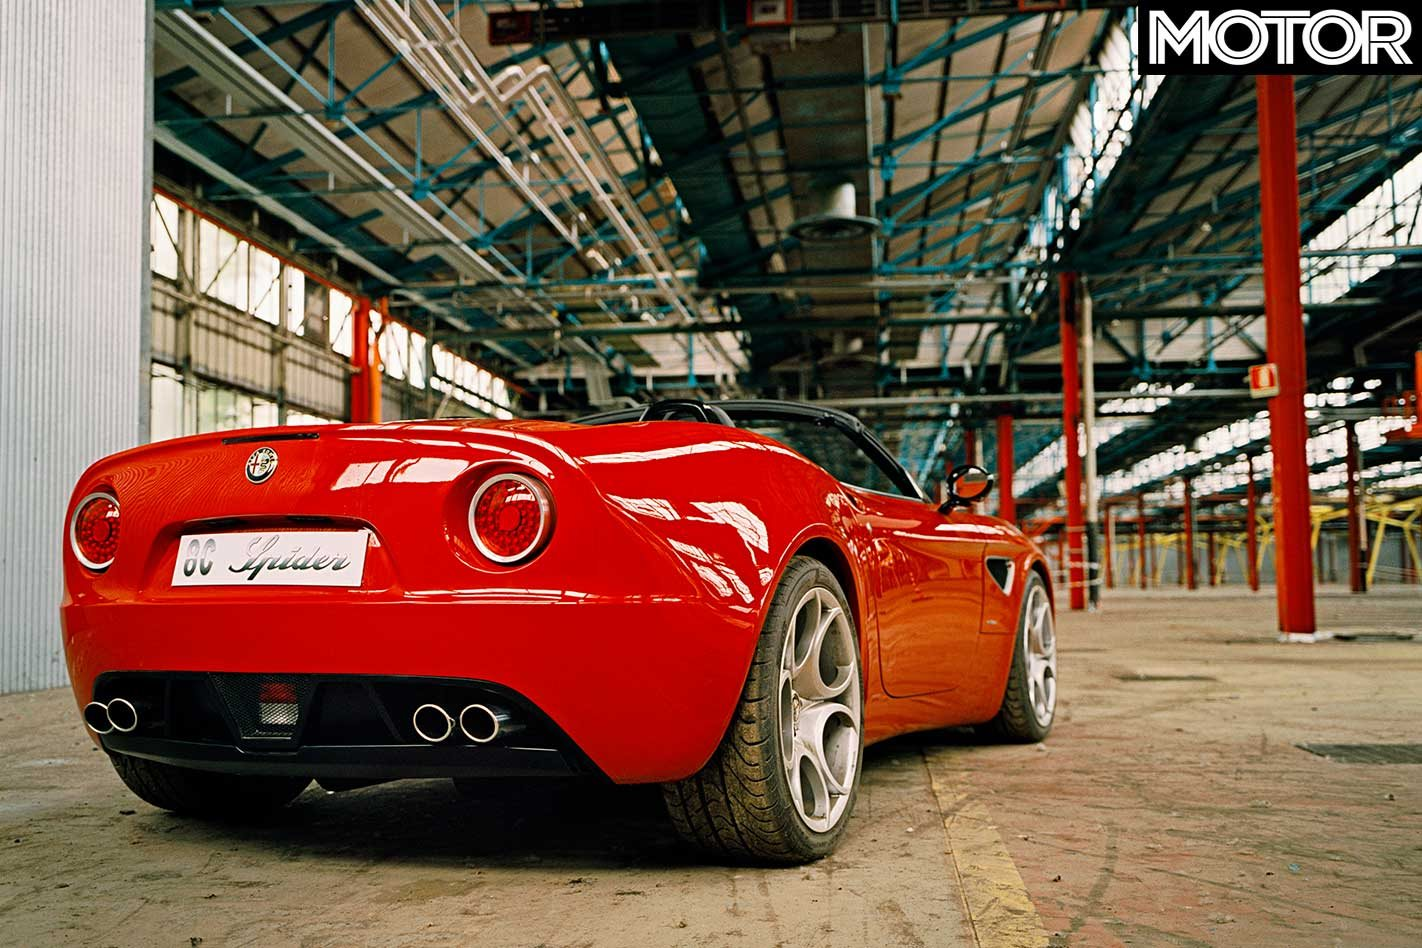 2006 Alfa Romeo 8c Spider Prototype Review Classic Motor Rear End In The We Assigned This Task To Two Pensioners Who Had Conceived Roof For Duetto Way Back When